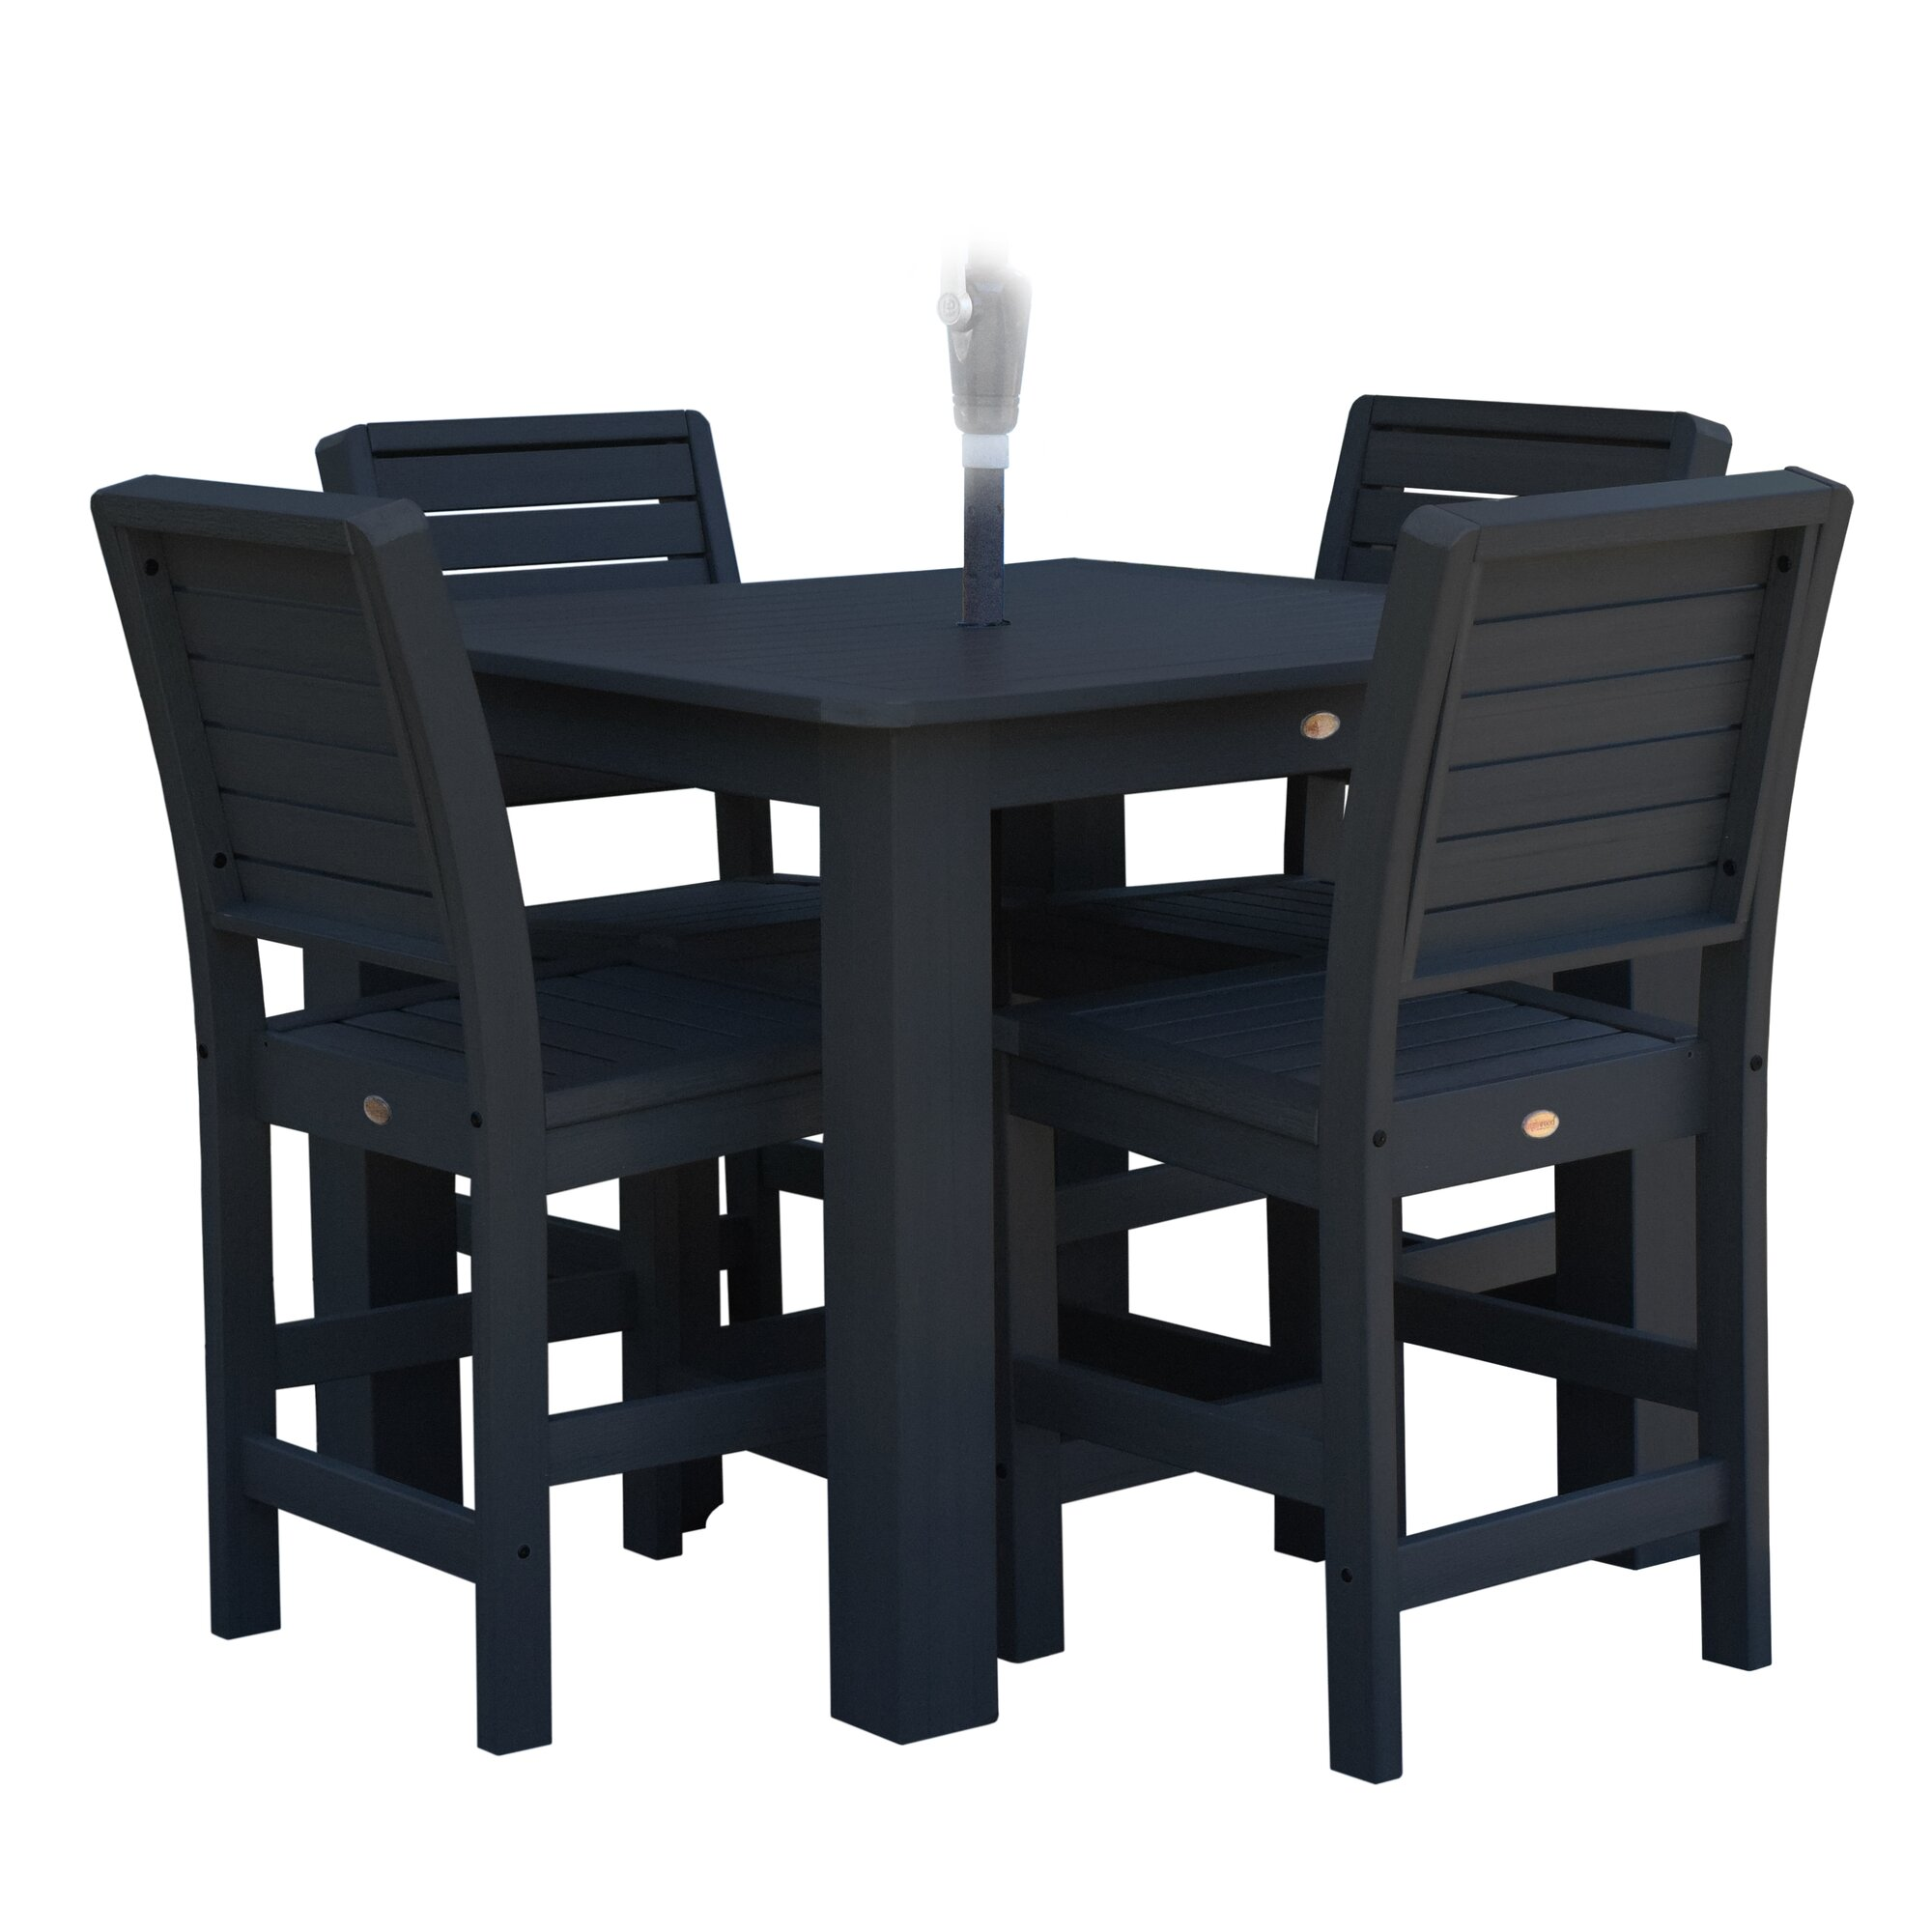 Berry 5 Piece Bar Height Dining Set